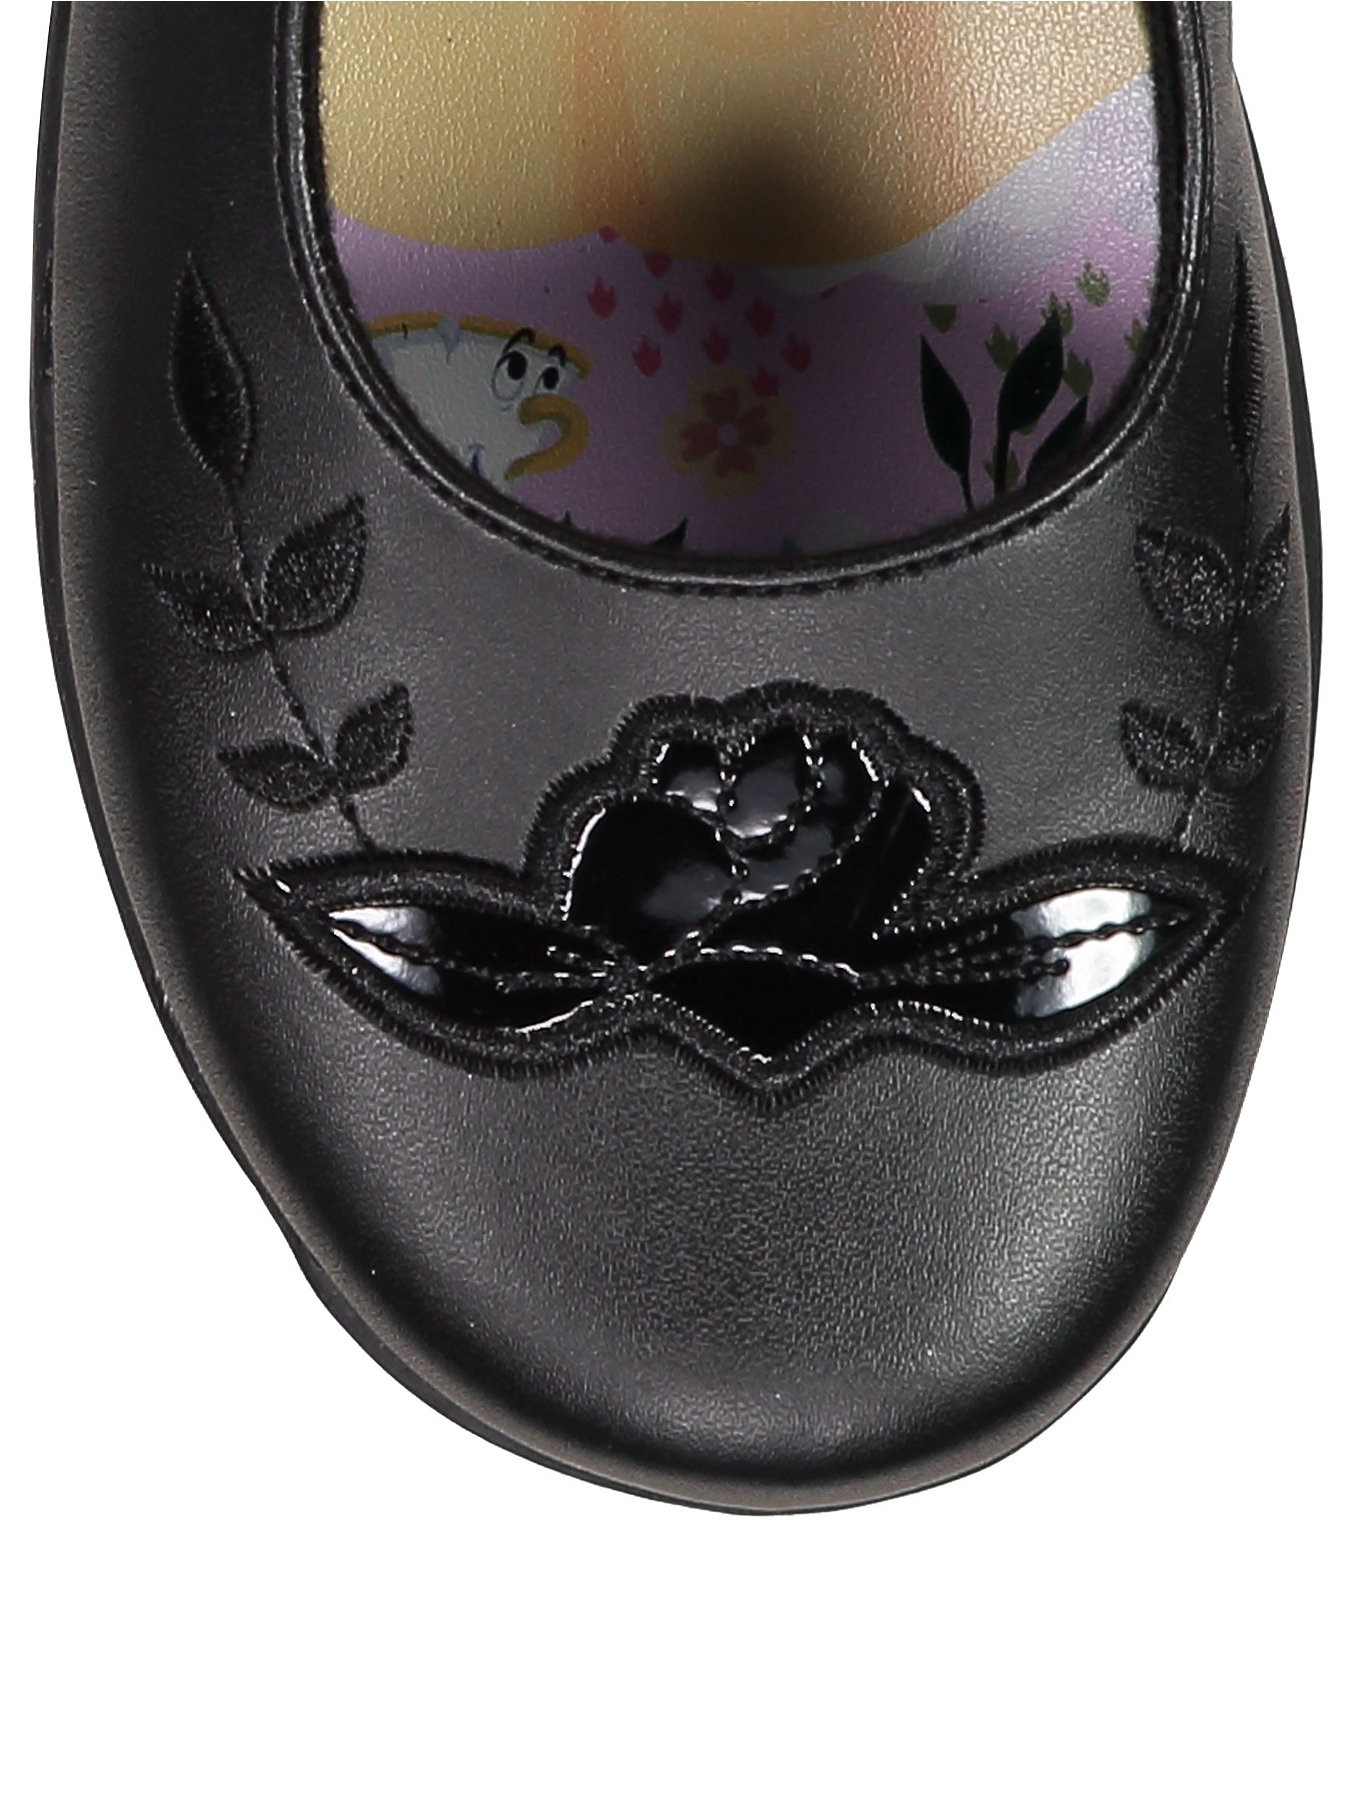 2e94c85eab24 Girls Black Disney Beauty and the Beast Light Up School Shoes. Reset